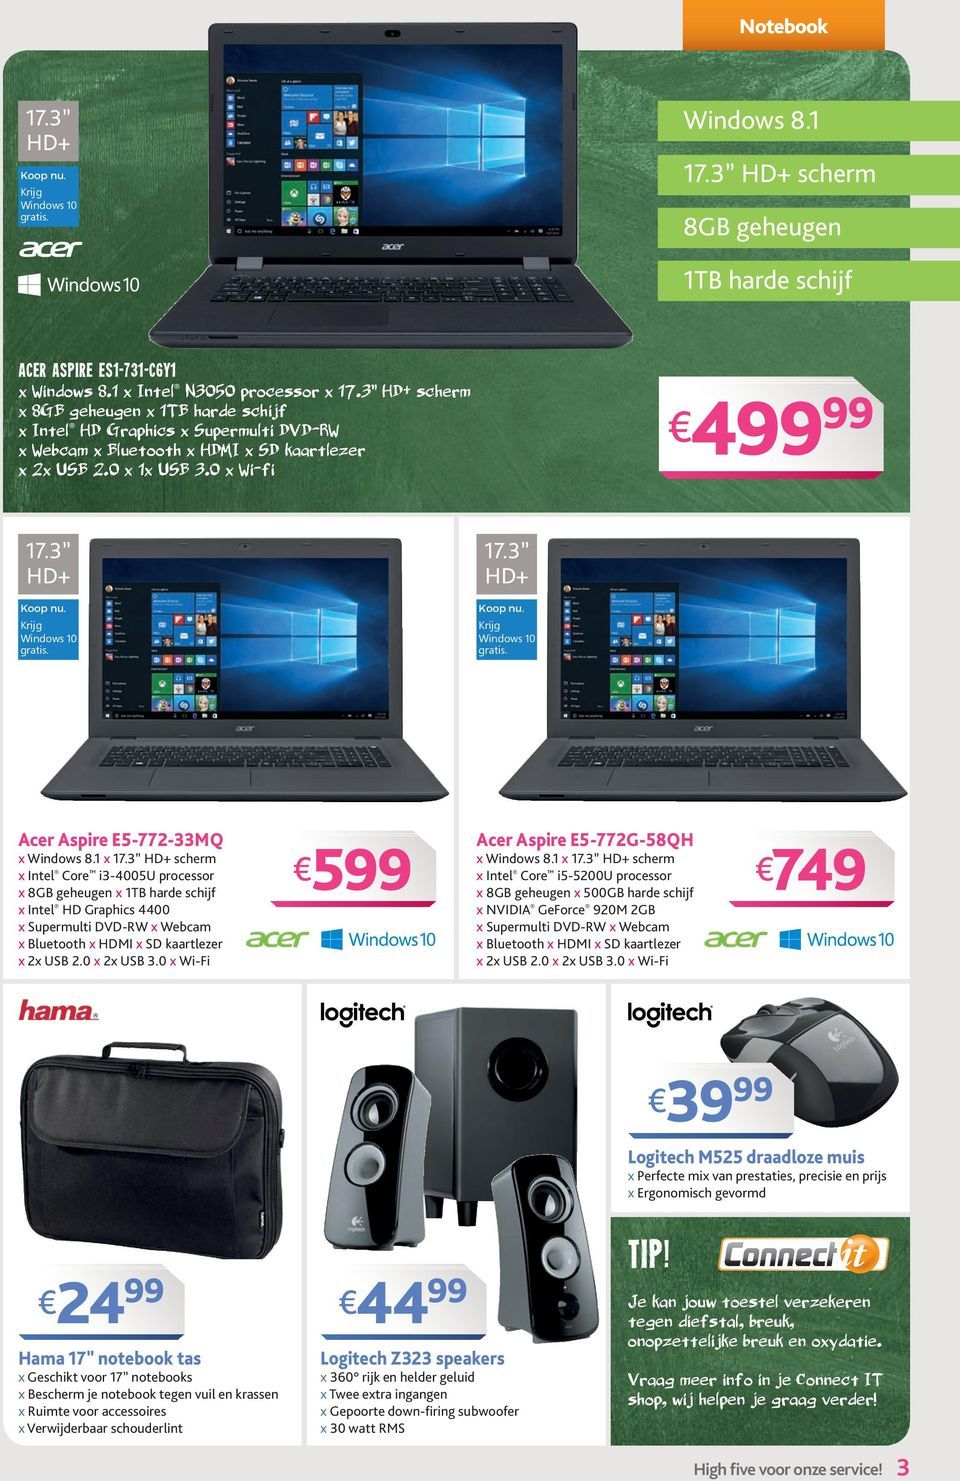 17.3 HD+ Koop nu. Krijg gratis. Acer Aspire E5-772-33MQ x Windows 8.1 x 17.